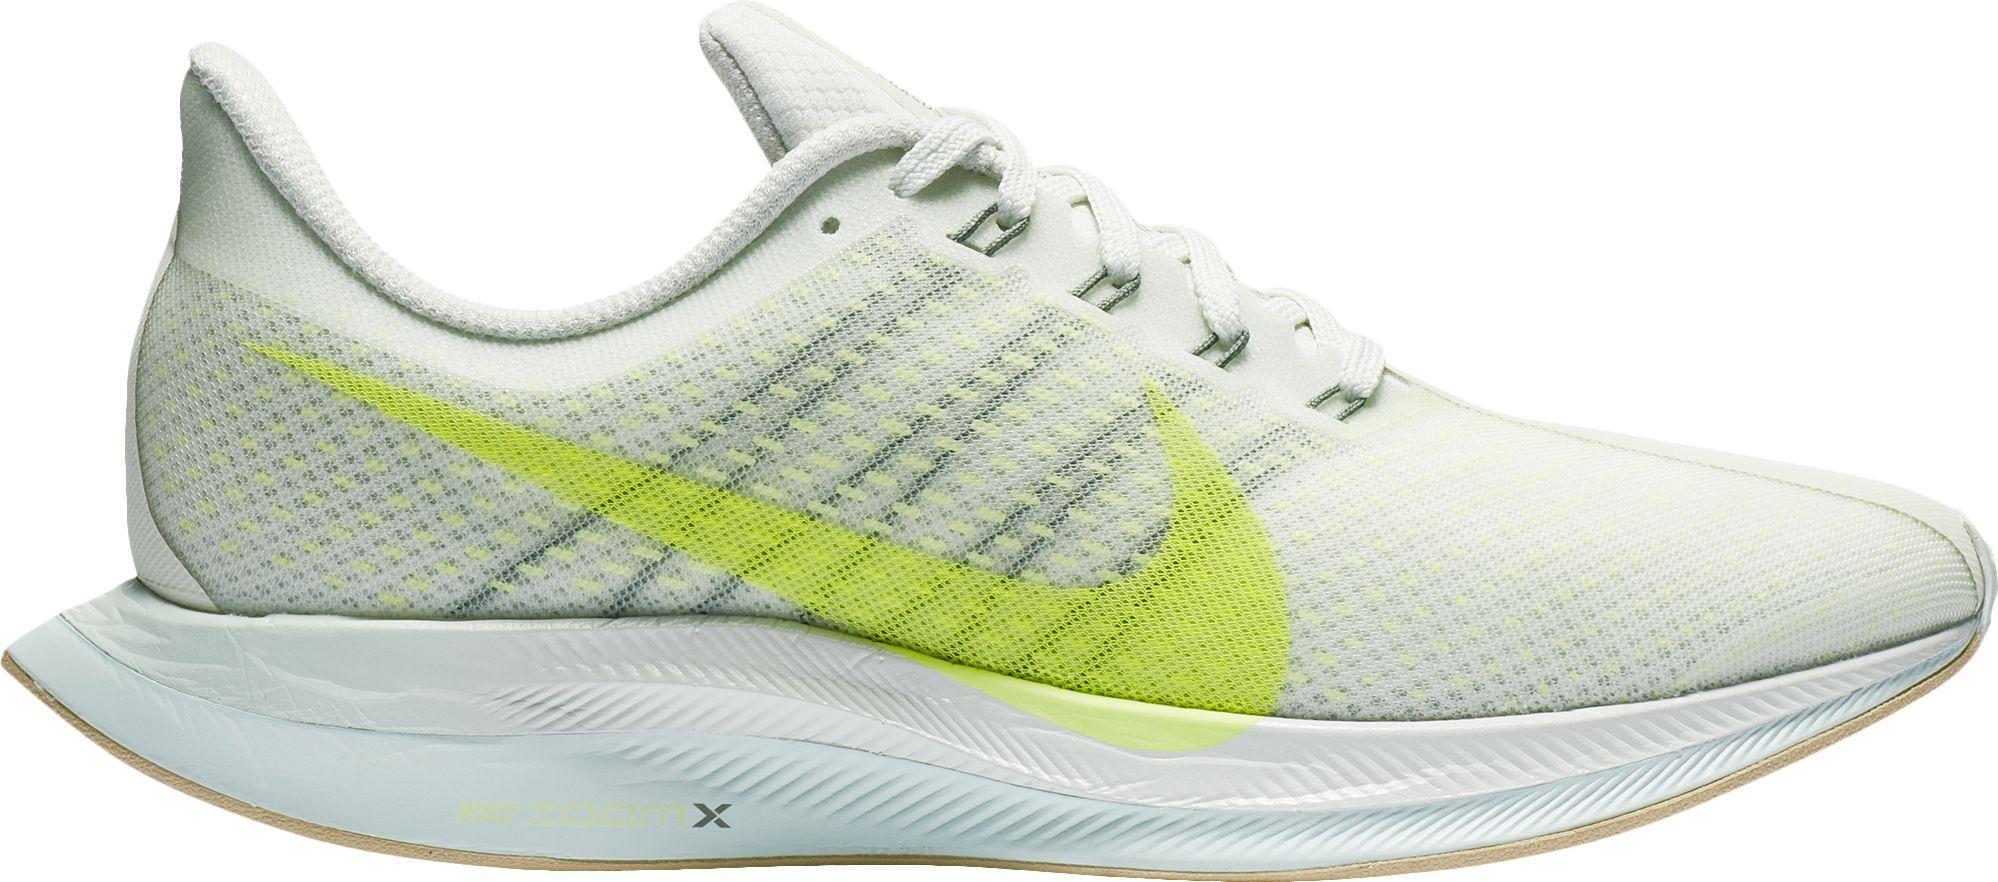 2c50b71a2938c Lyst - Nike Zoom Pegasus 35 Turbo Running Shoes in Green - Save 21%